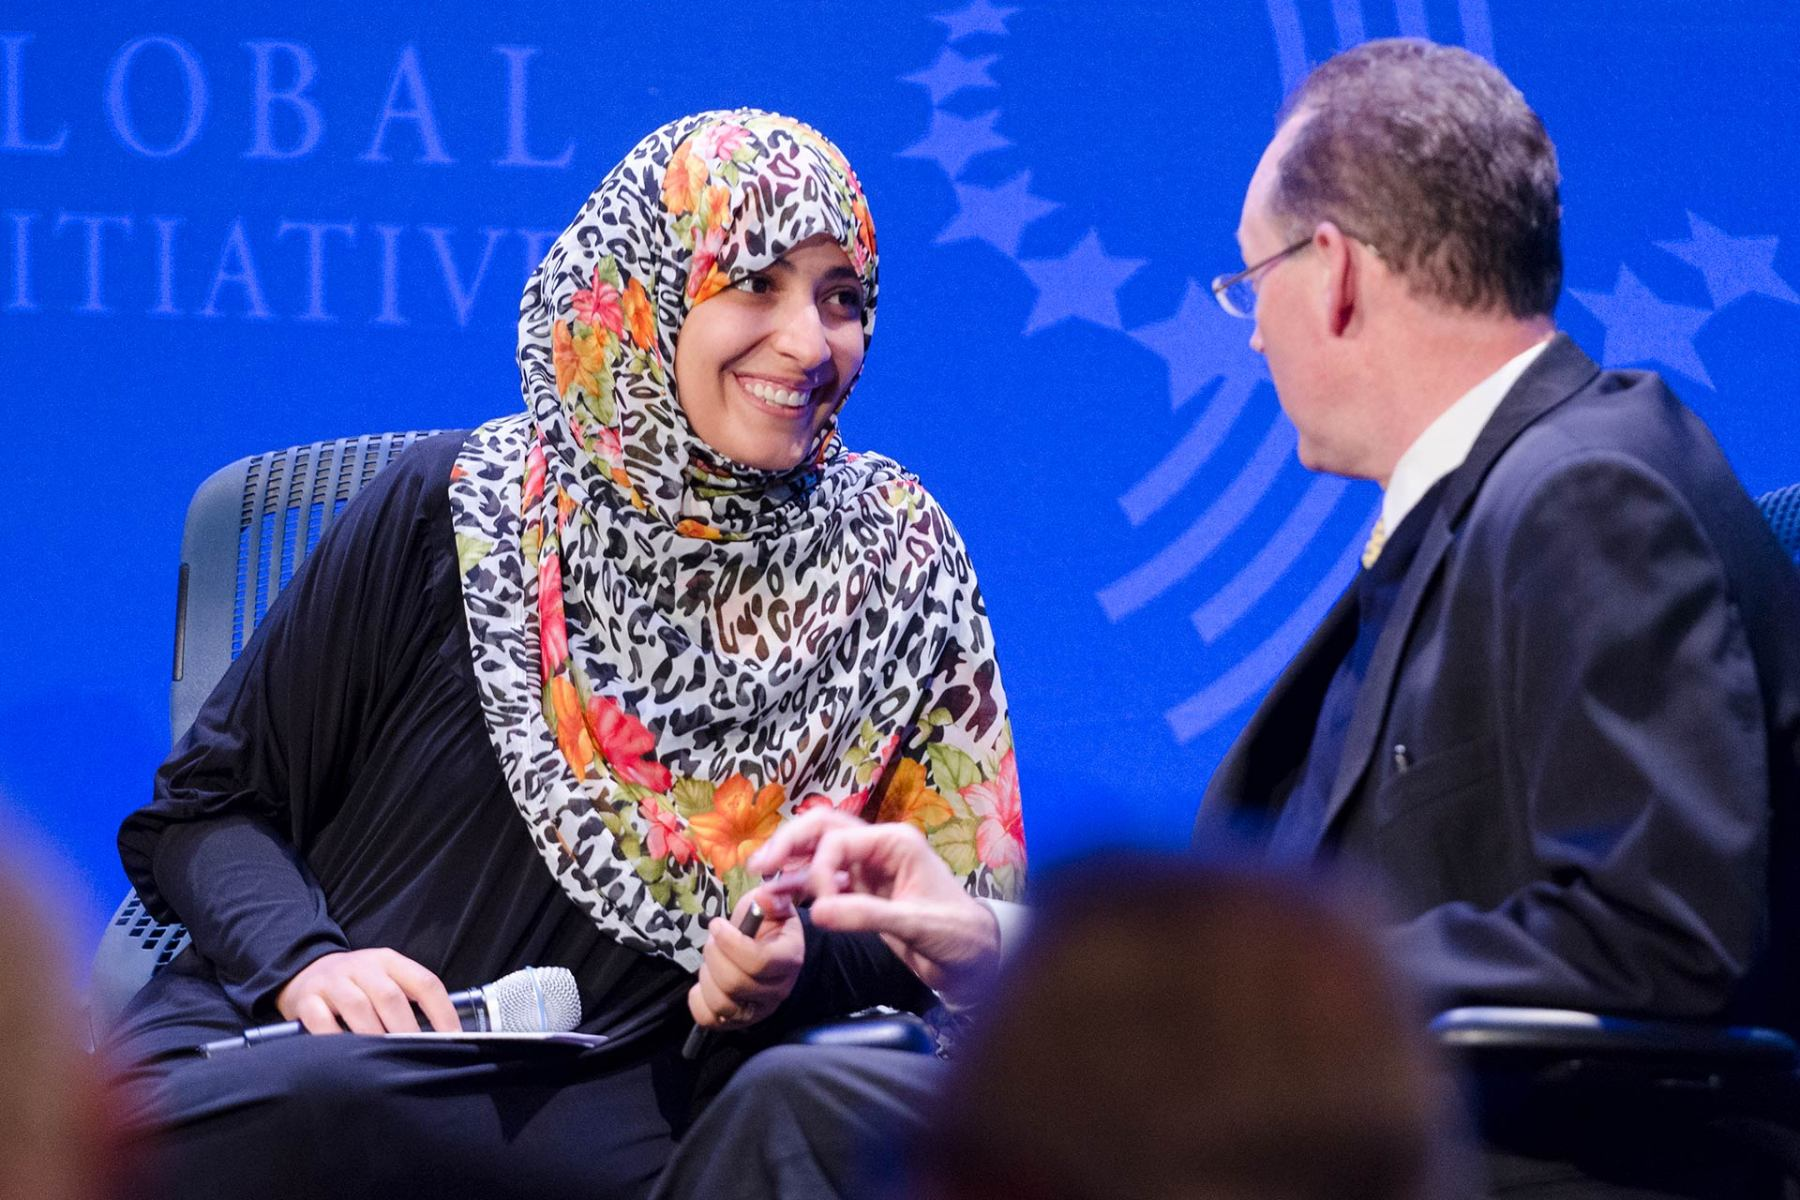 Clinton Global Initiative, CGI 2012 meetings, Champions of Action, Designing for Impact, New York, September 2012